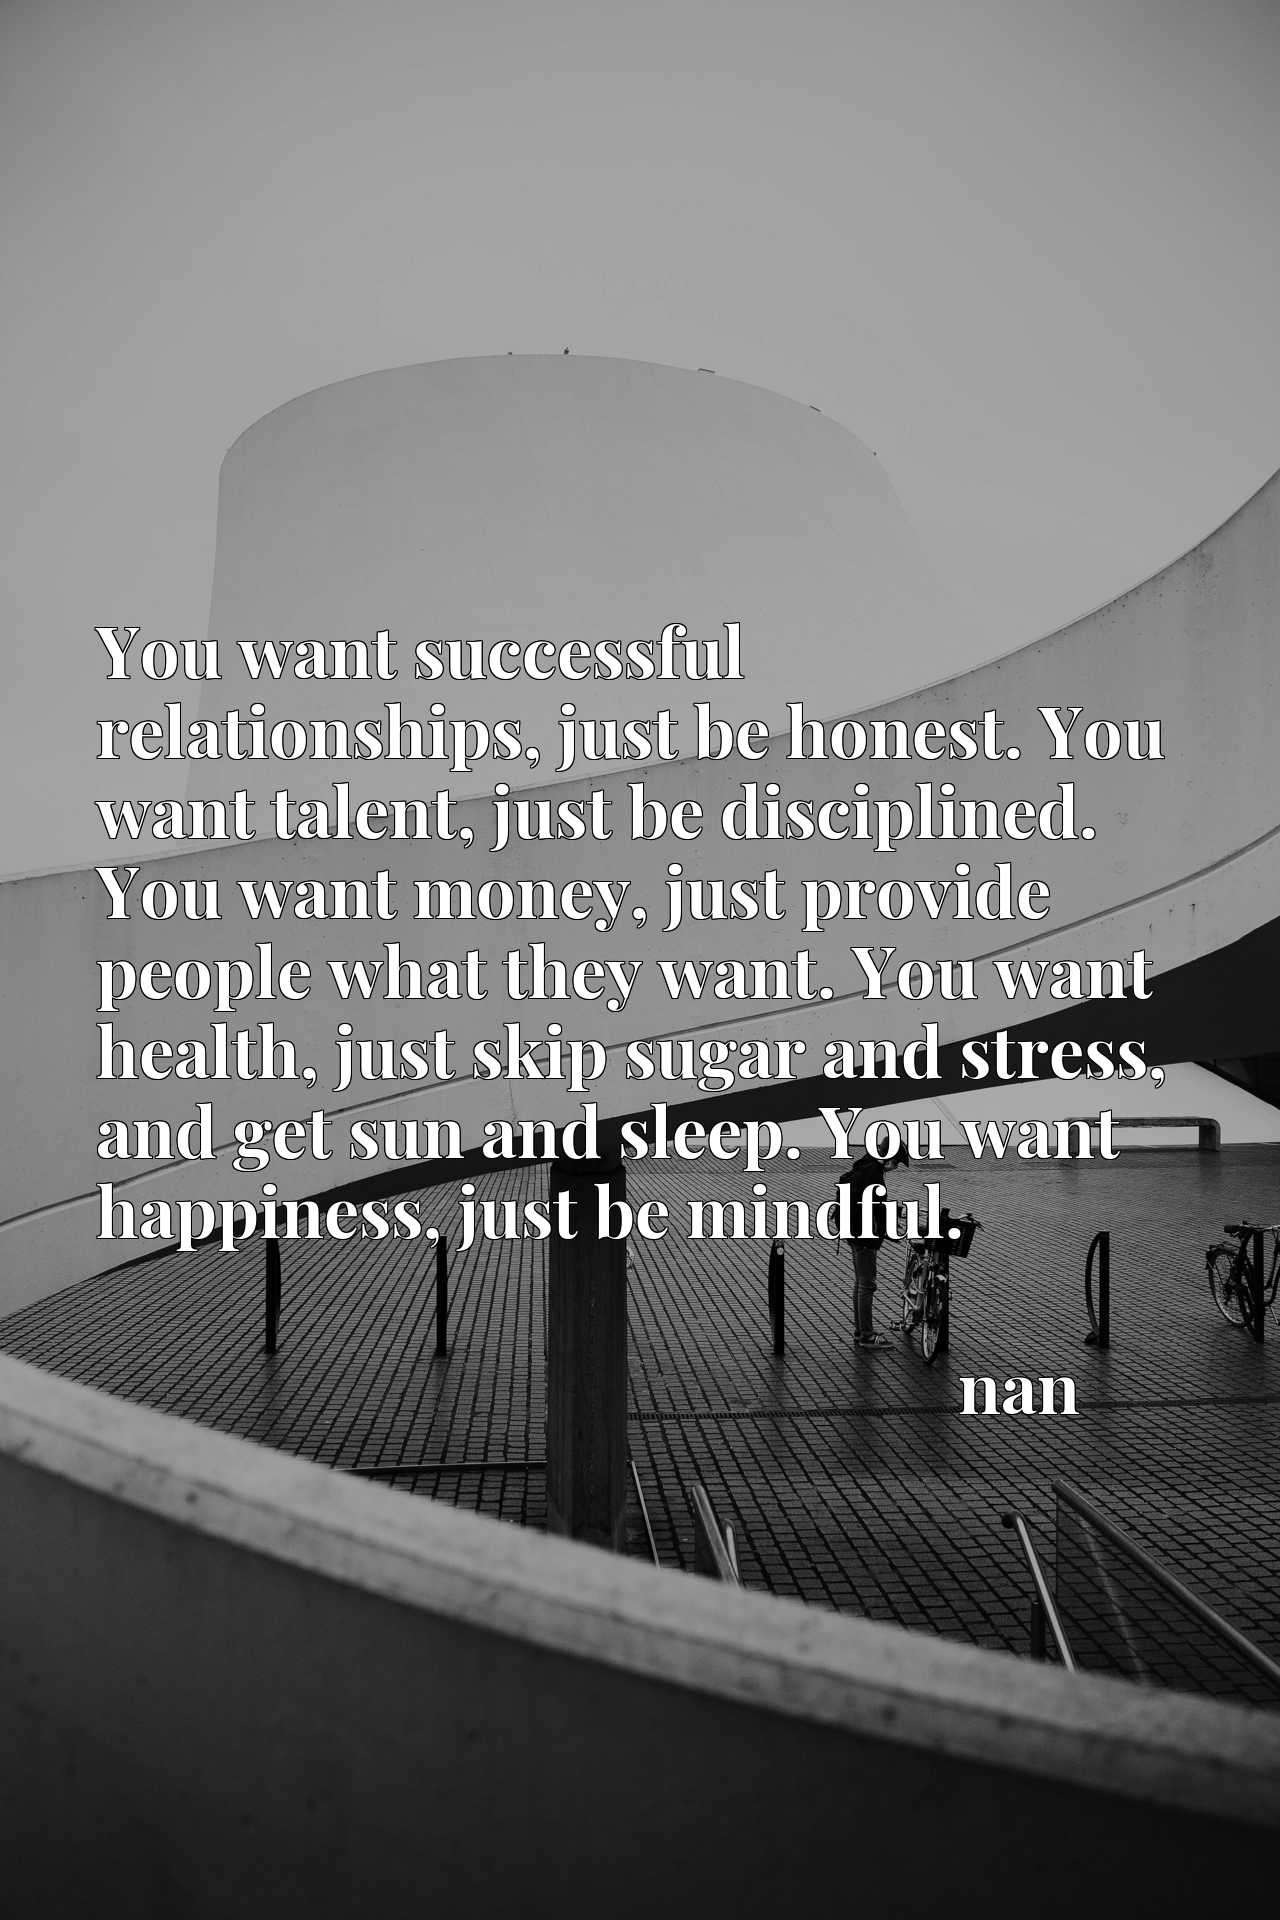 You want successful relationships, just be honest. You want talent, just be disciplined. You want money, just provide people what they want. You want health, just skip sugar and stress, and get sun and sleep. You want happiness, just be mindful.